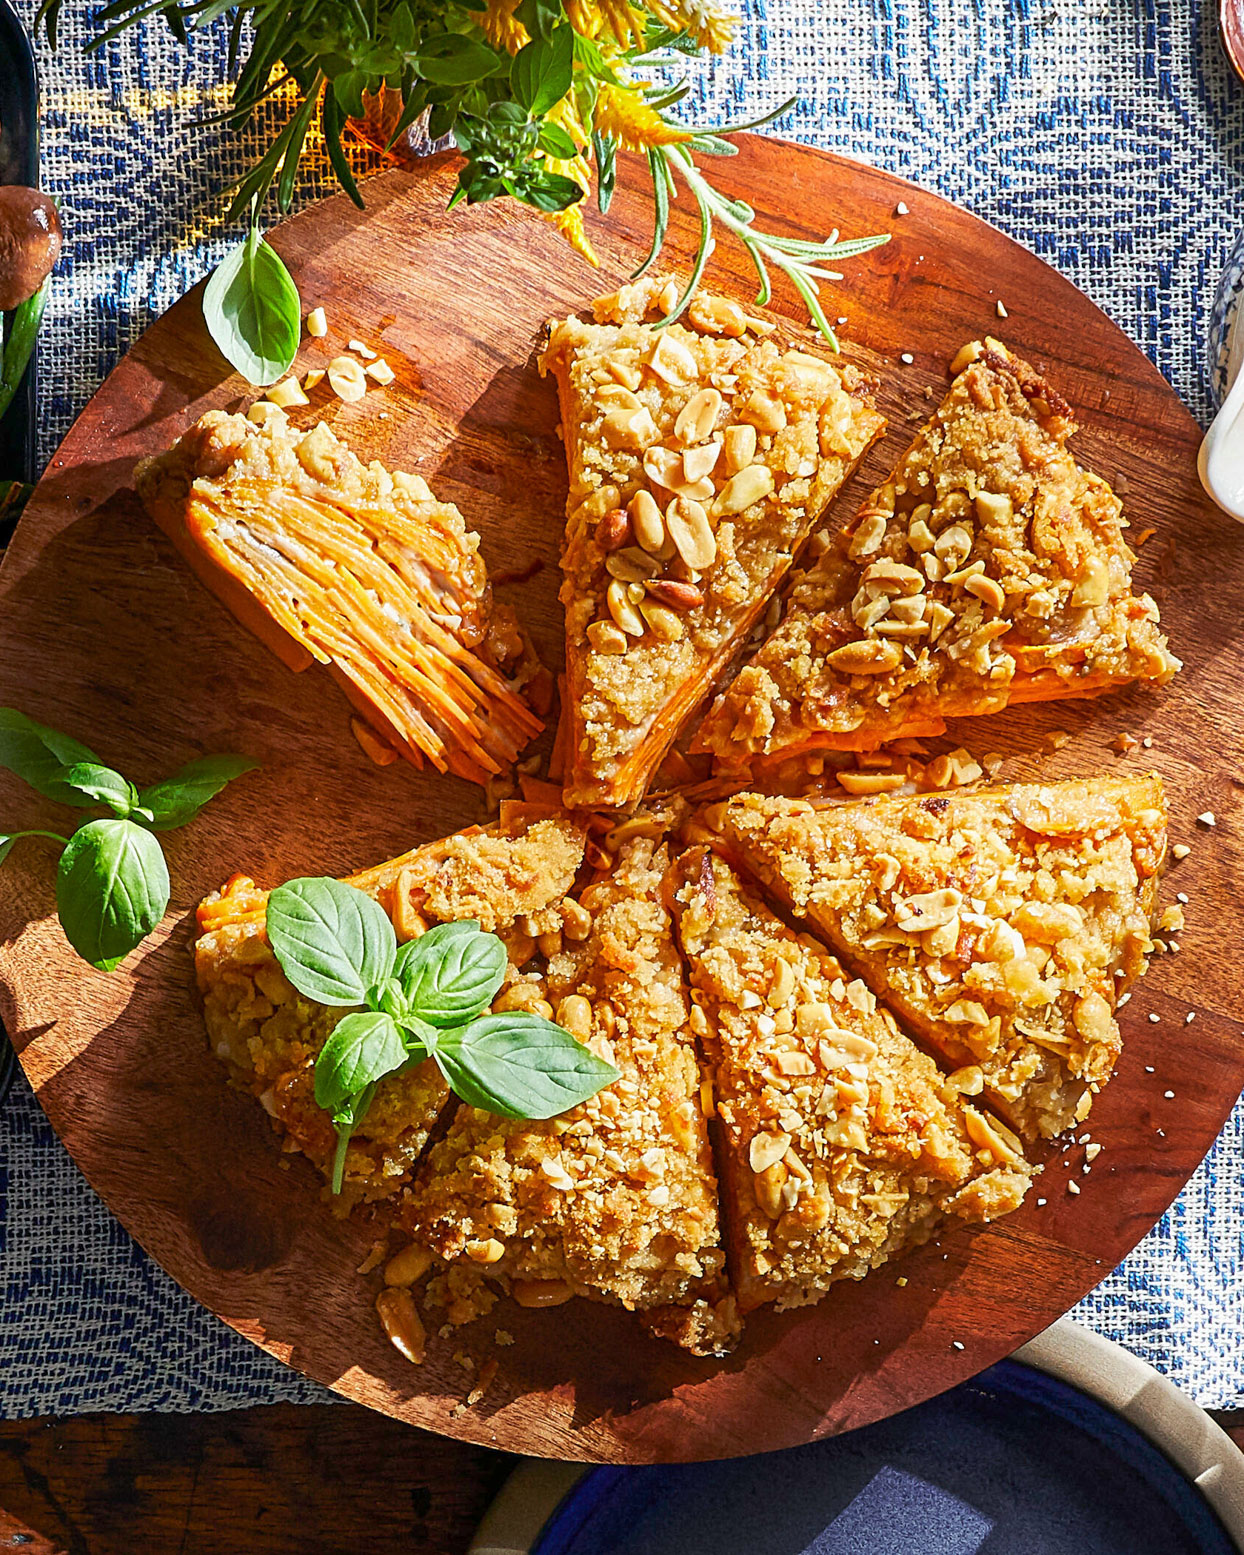 Scalloped Sweet Potatoes with Peanut Streusel